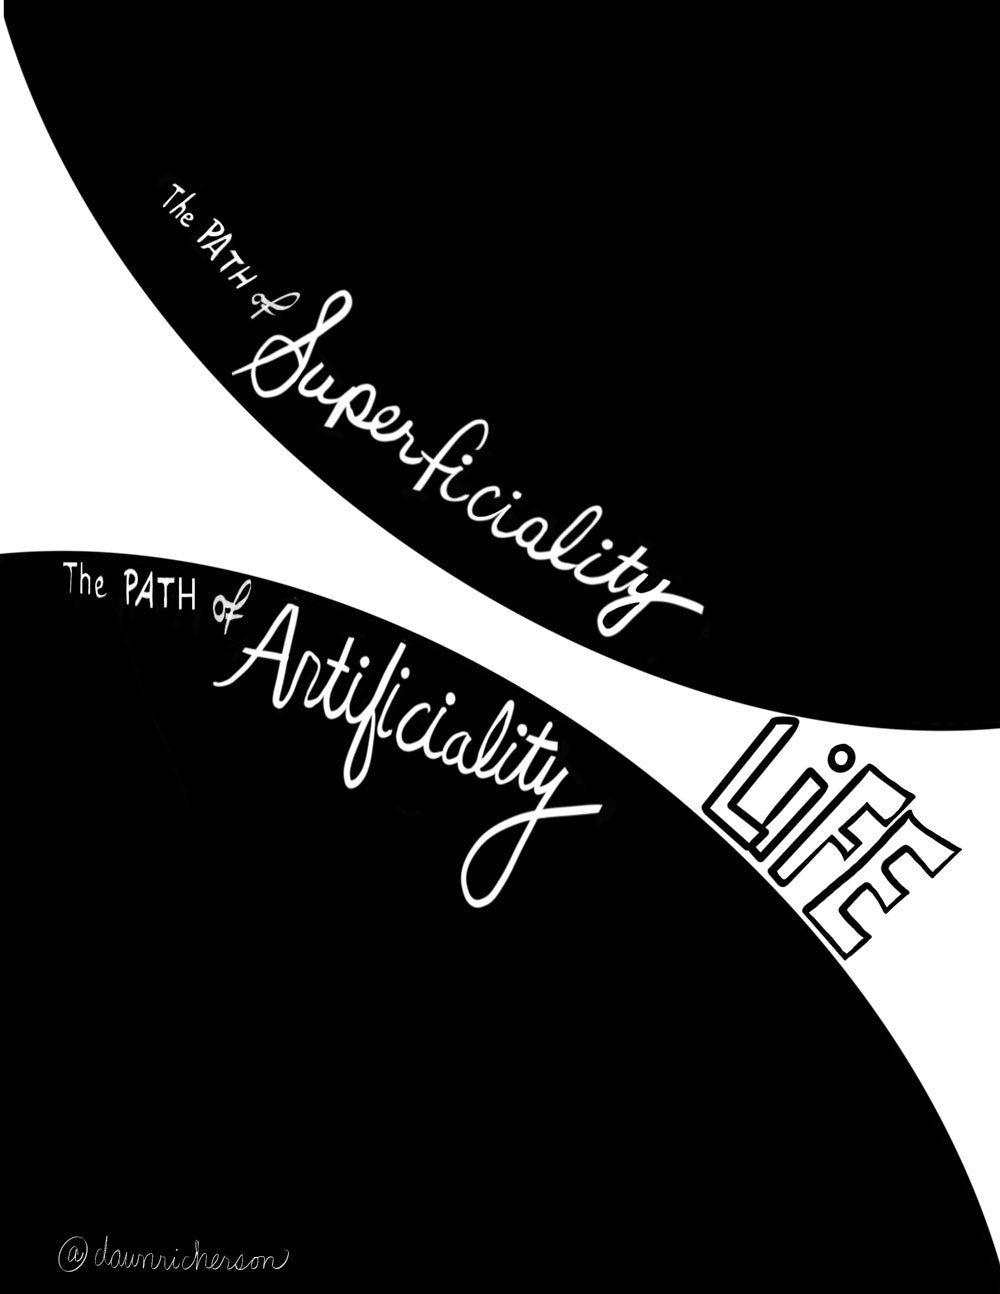 The Superficial Life and the Artificial Life